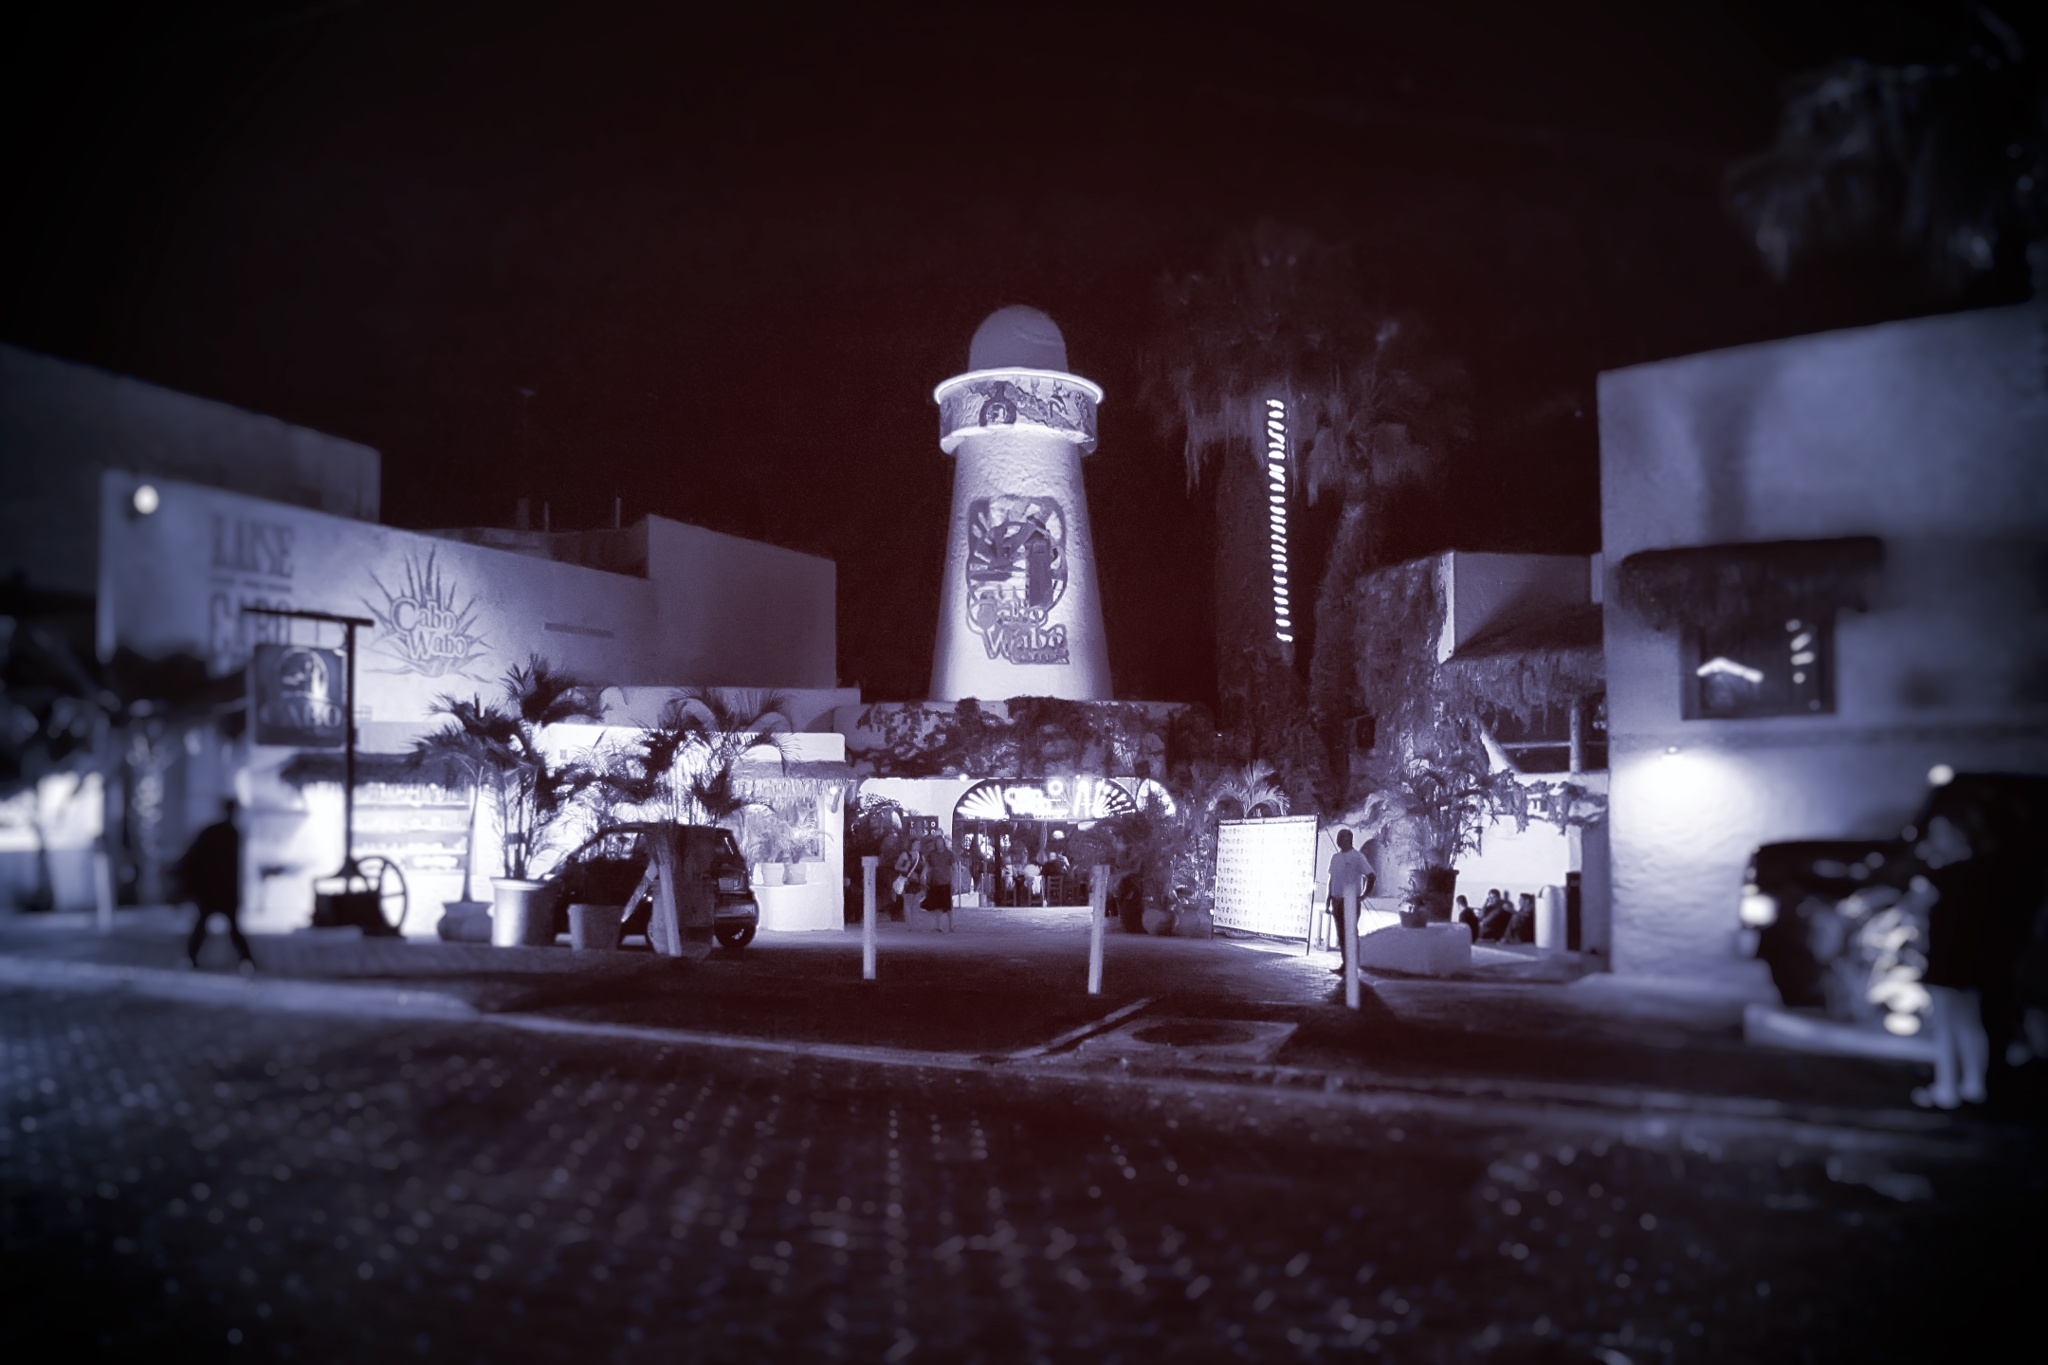 Cabo Wabo Night Vision by Scott Hryciuk